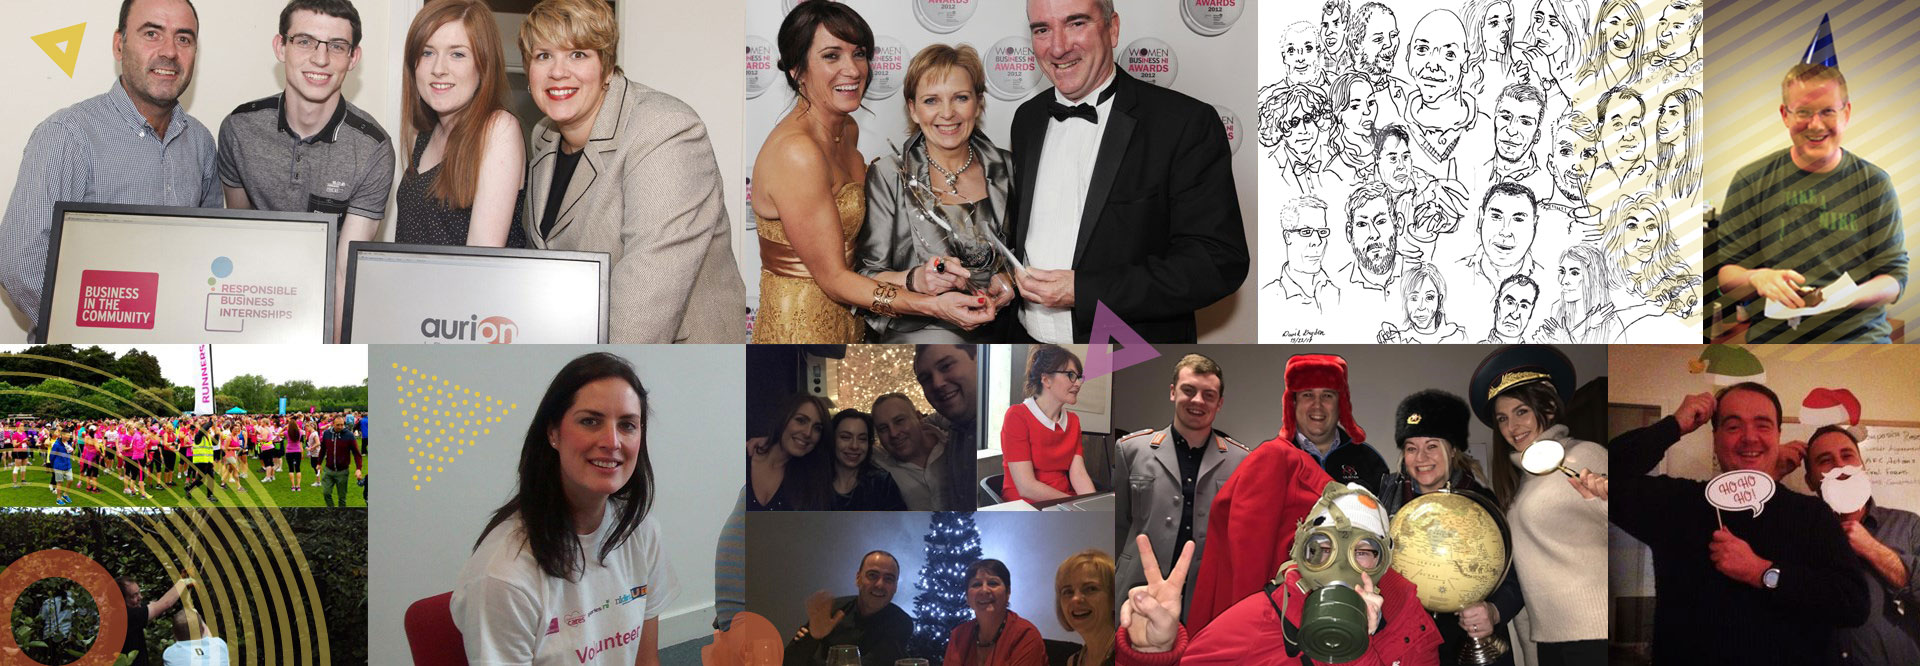 Collage of Aurion Learning team at work events and awards ceremonies